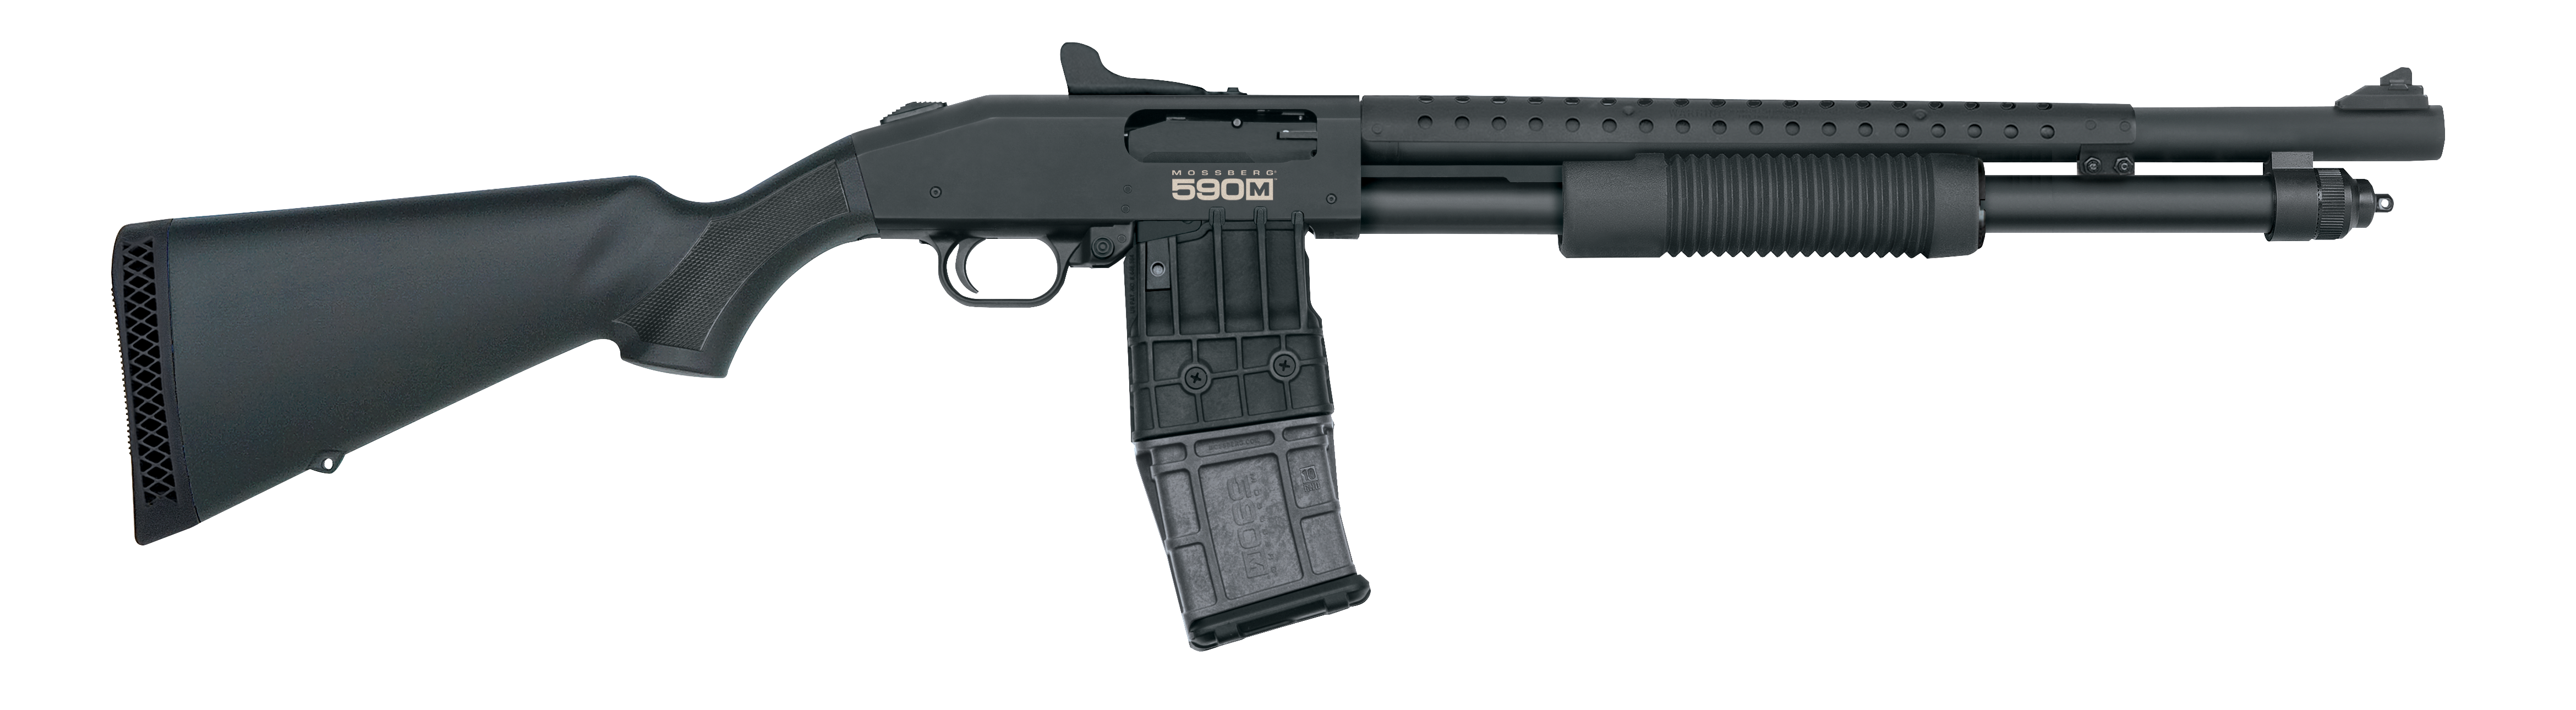 50 clip shot. Mossberg blog launches mag